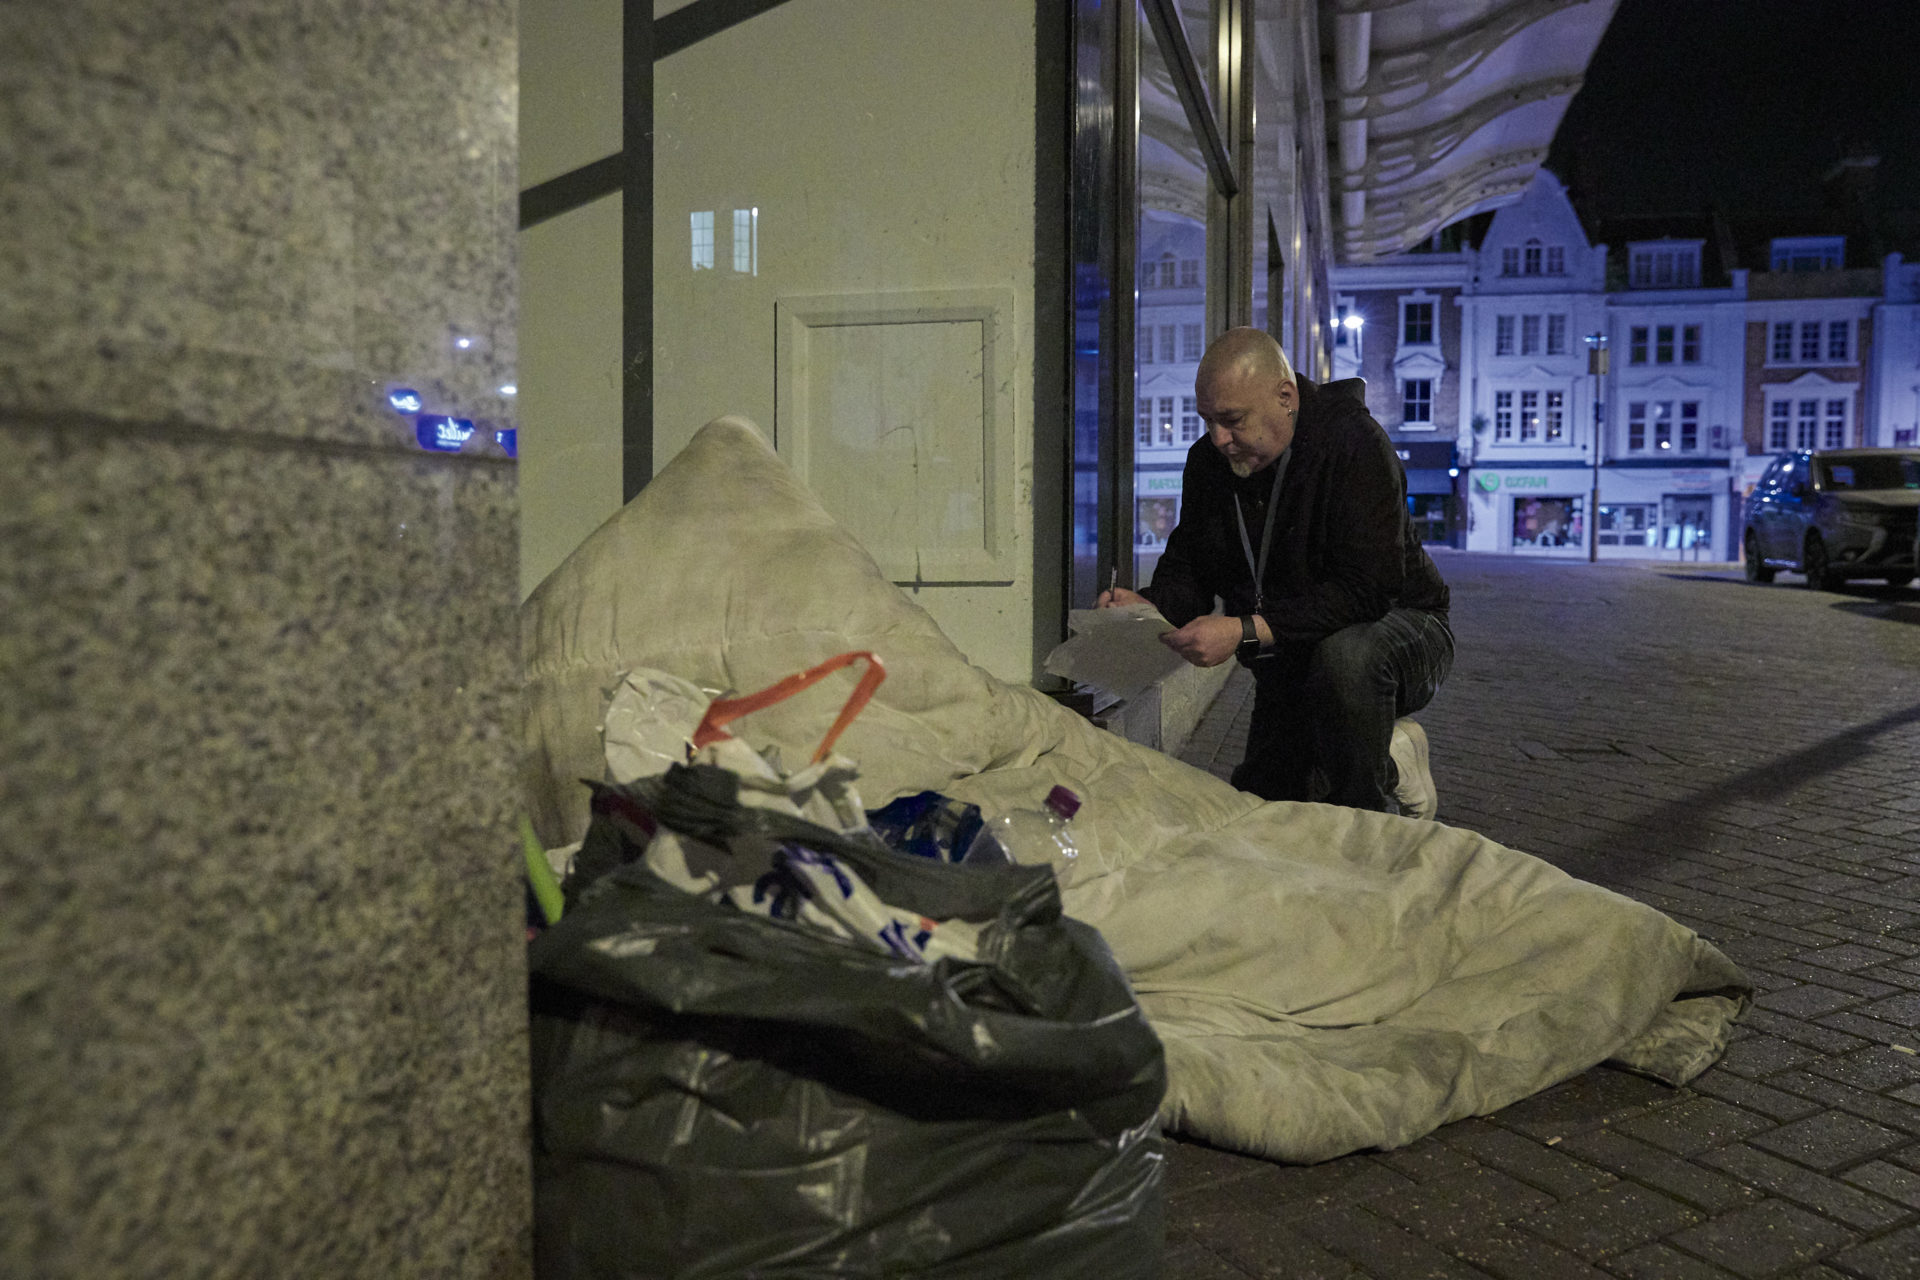 Homelessness sector outlines needs in open letter to the Prime Minister